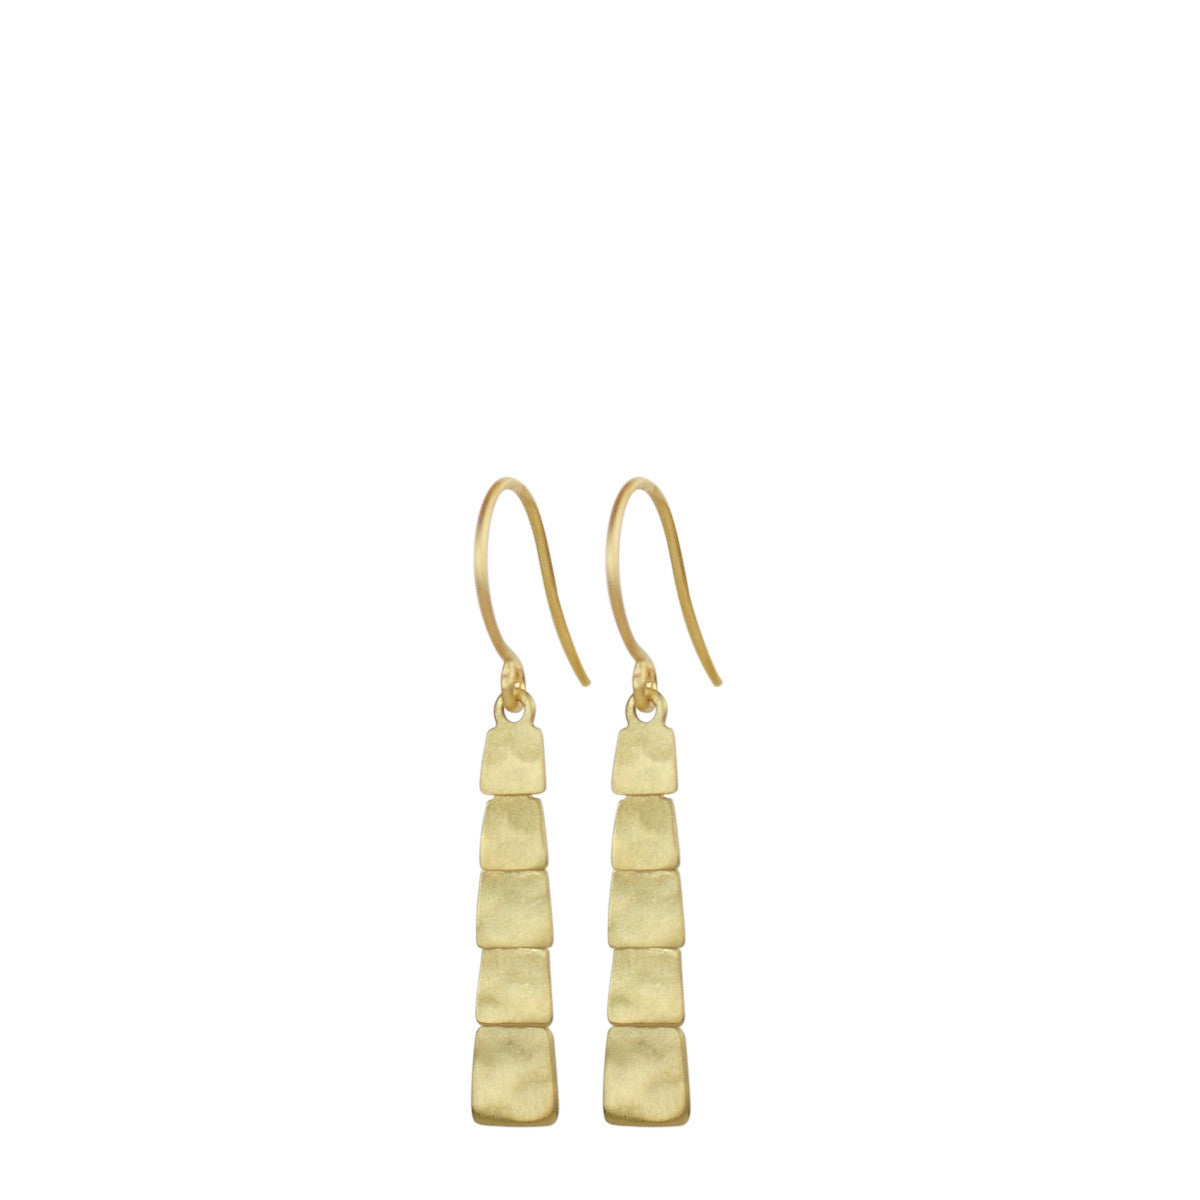 18K Gold Short Single Sequin Square Earrings